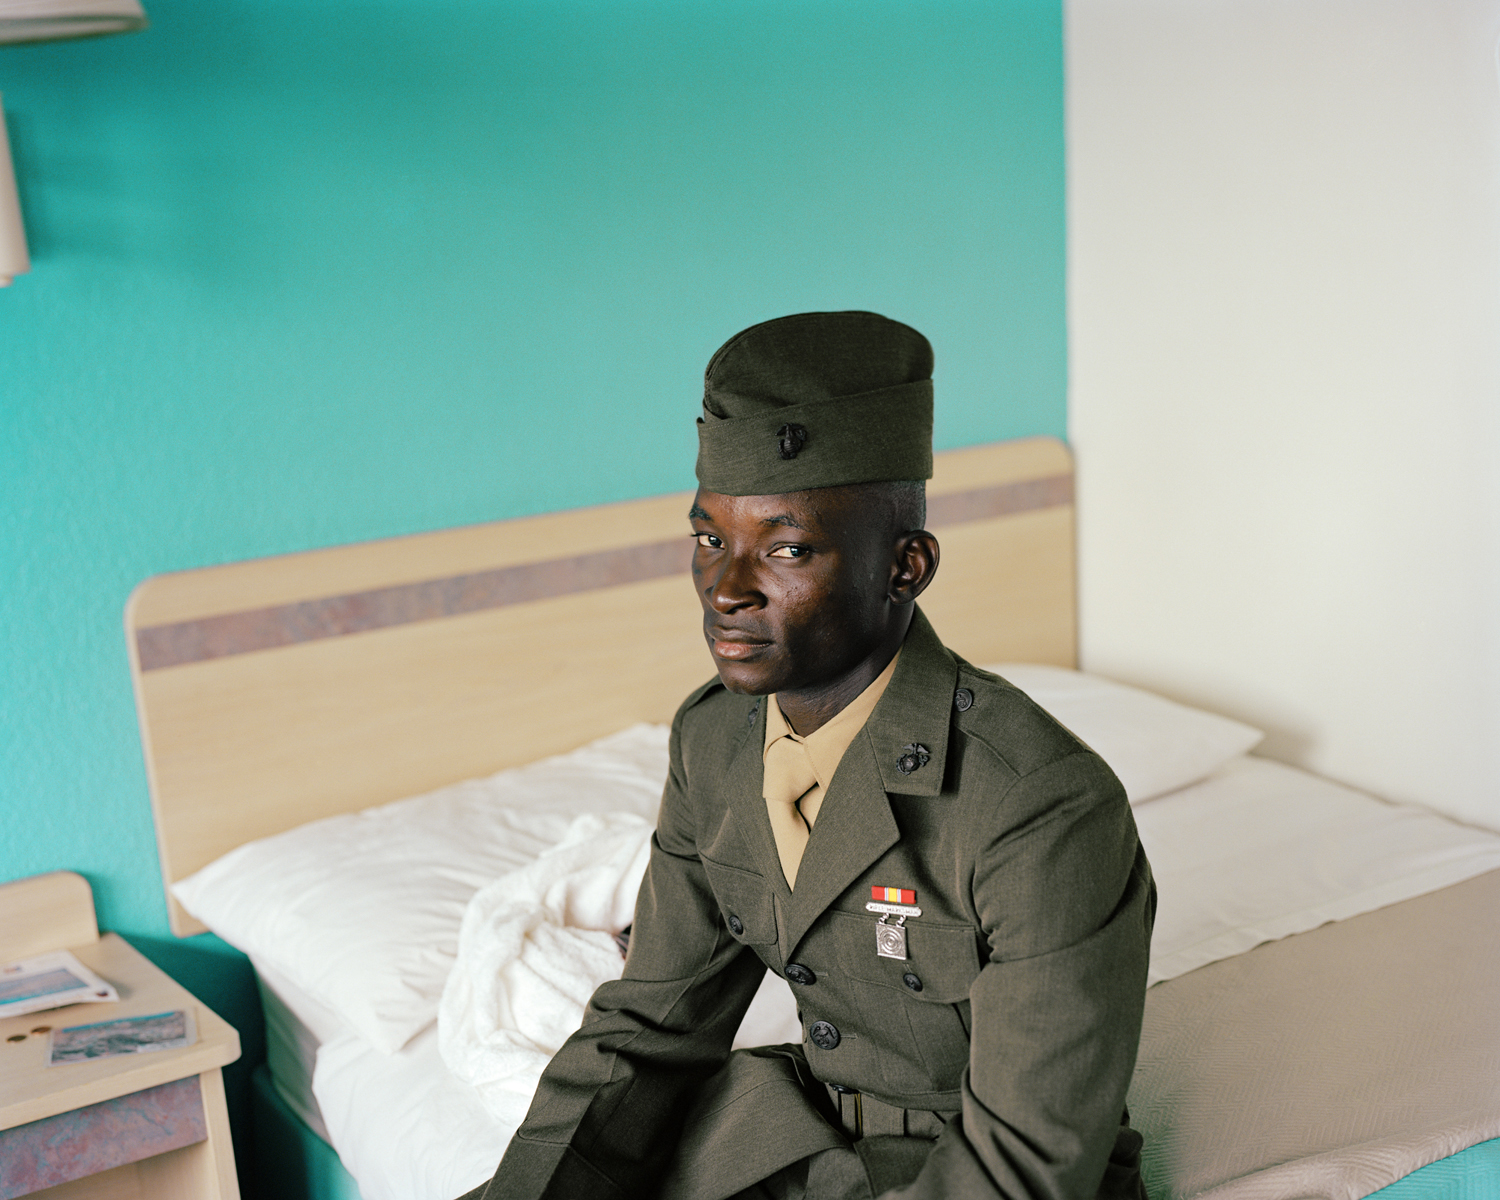 © Susan Worsham / Marine, Hotel Near Airport, Richmond, VA